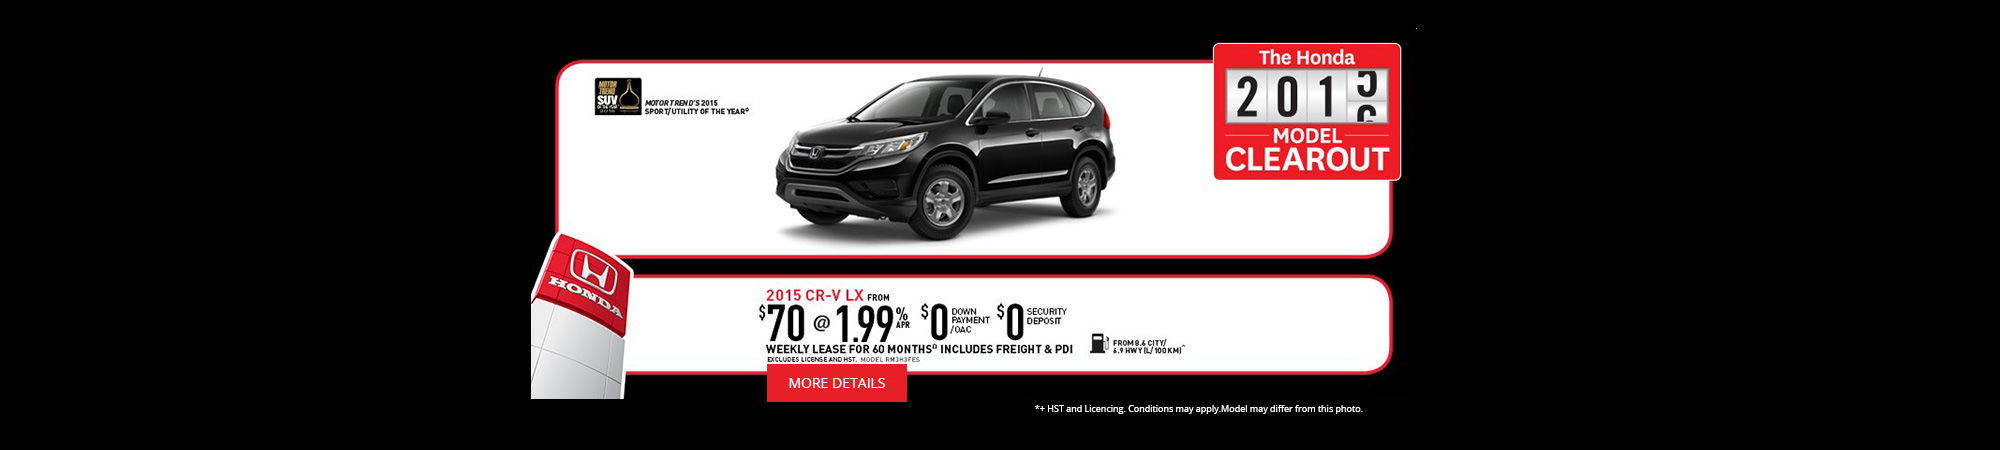 The Honda Model Clearout - CR-V